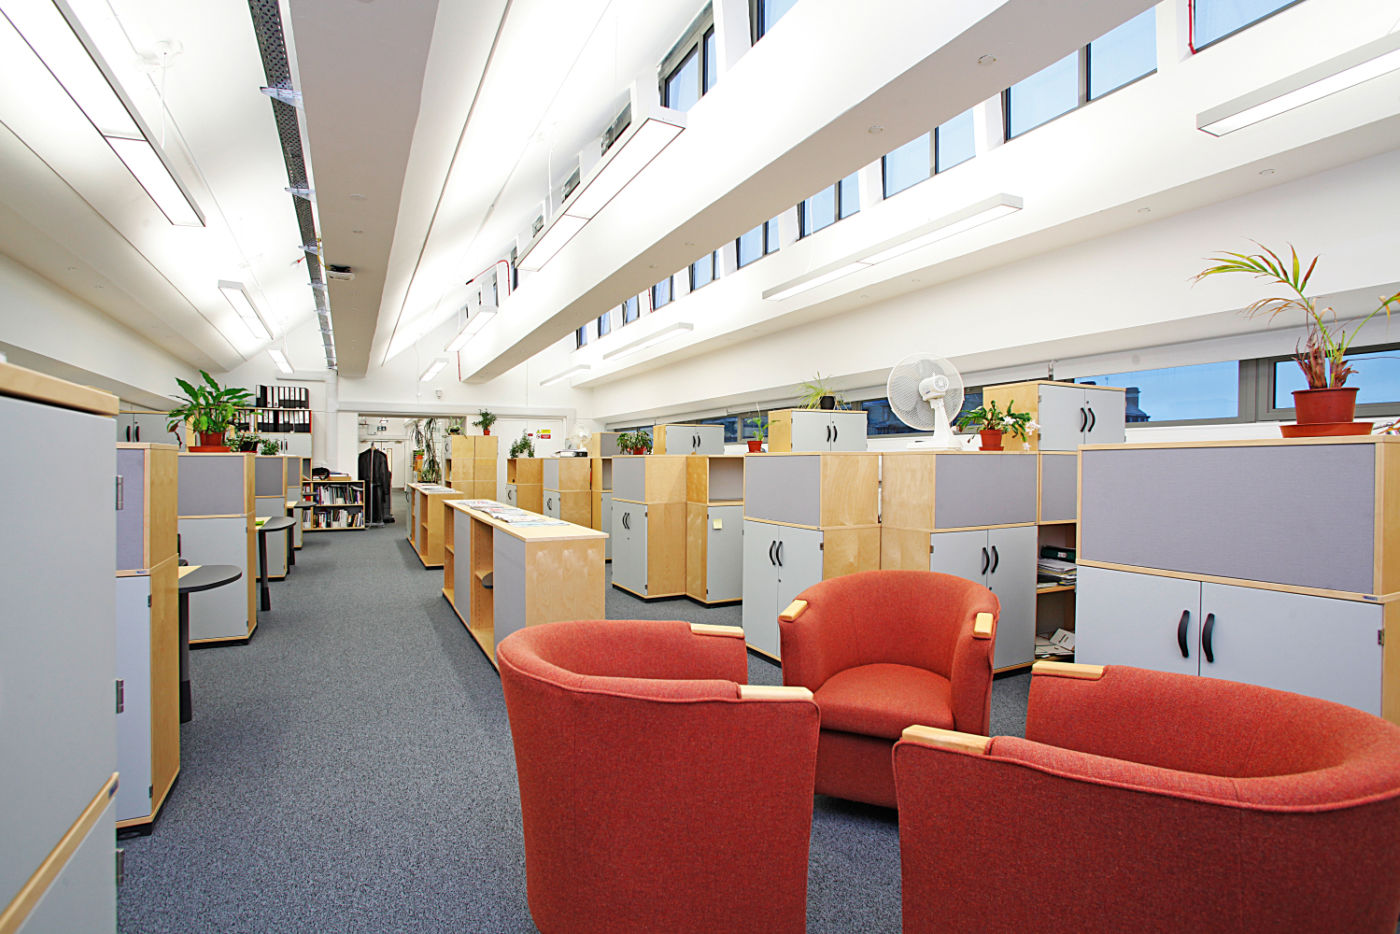 Storage cabinets in staff seating